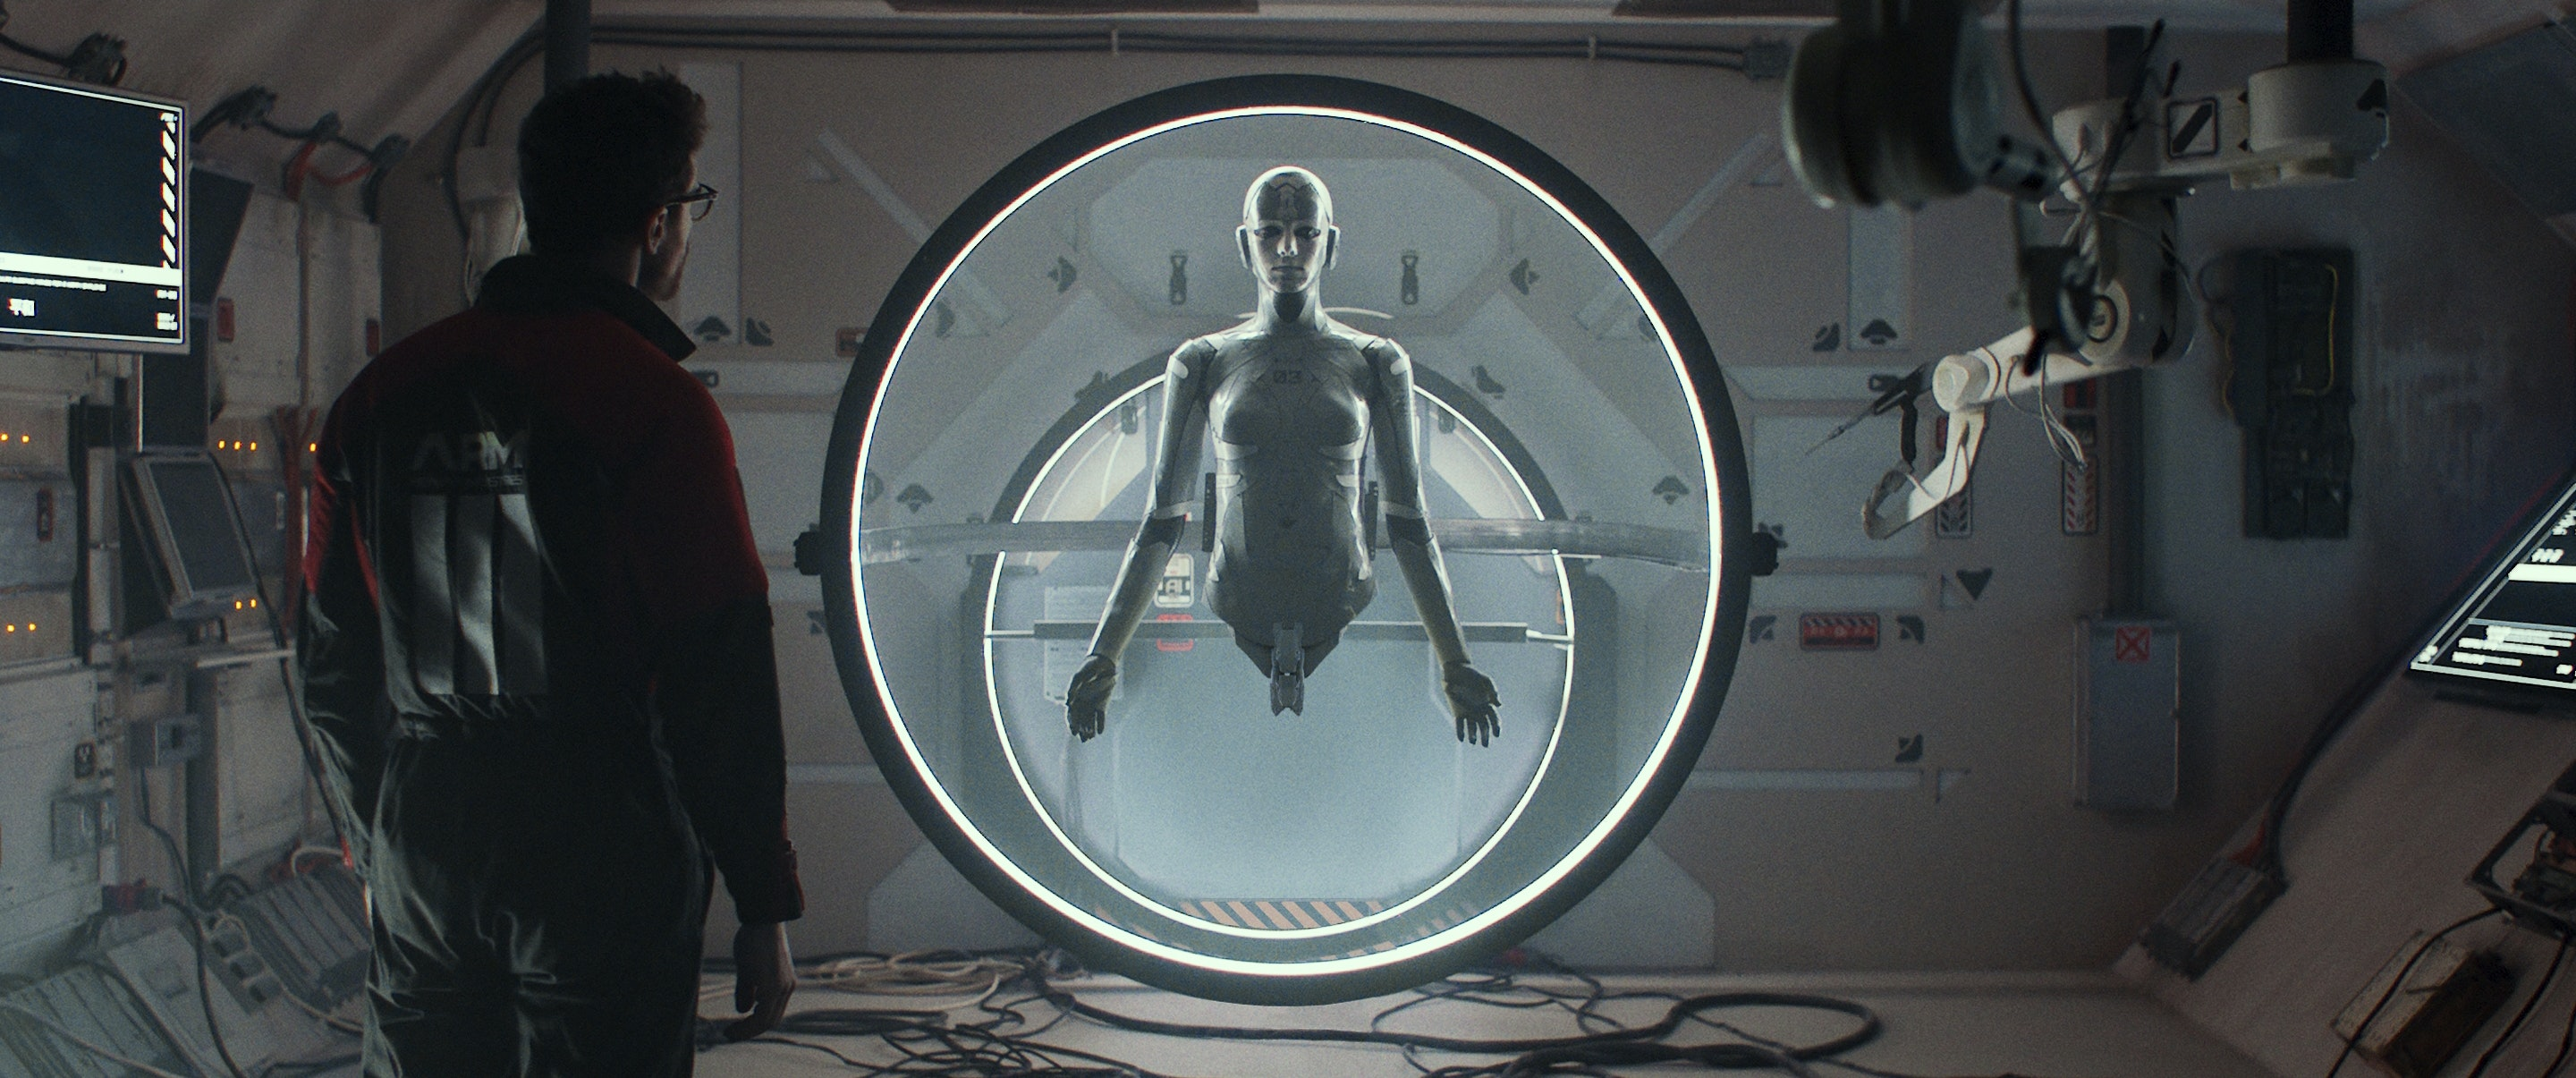 Archive' review: Gorgeous new sci-fi with a gut-punch twist ending